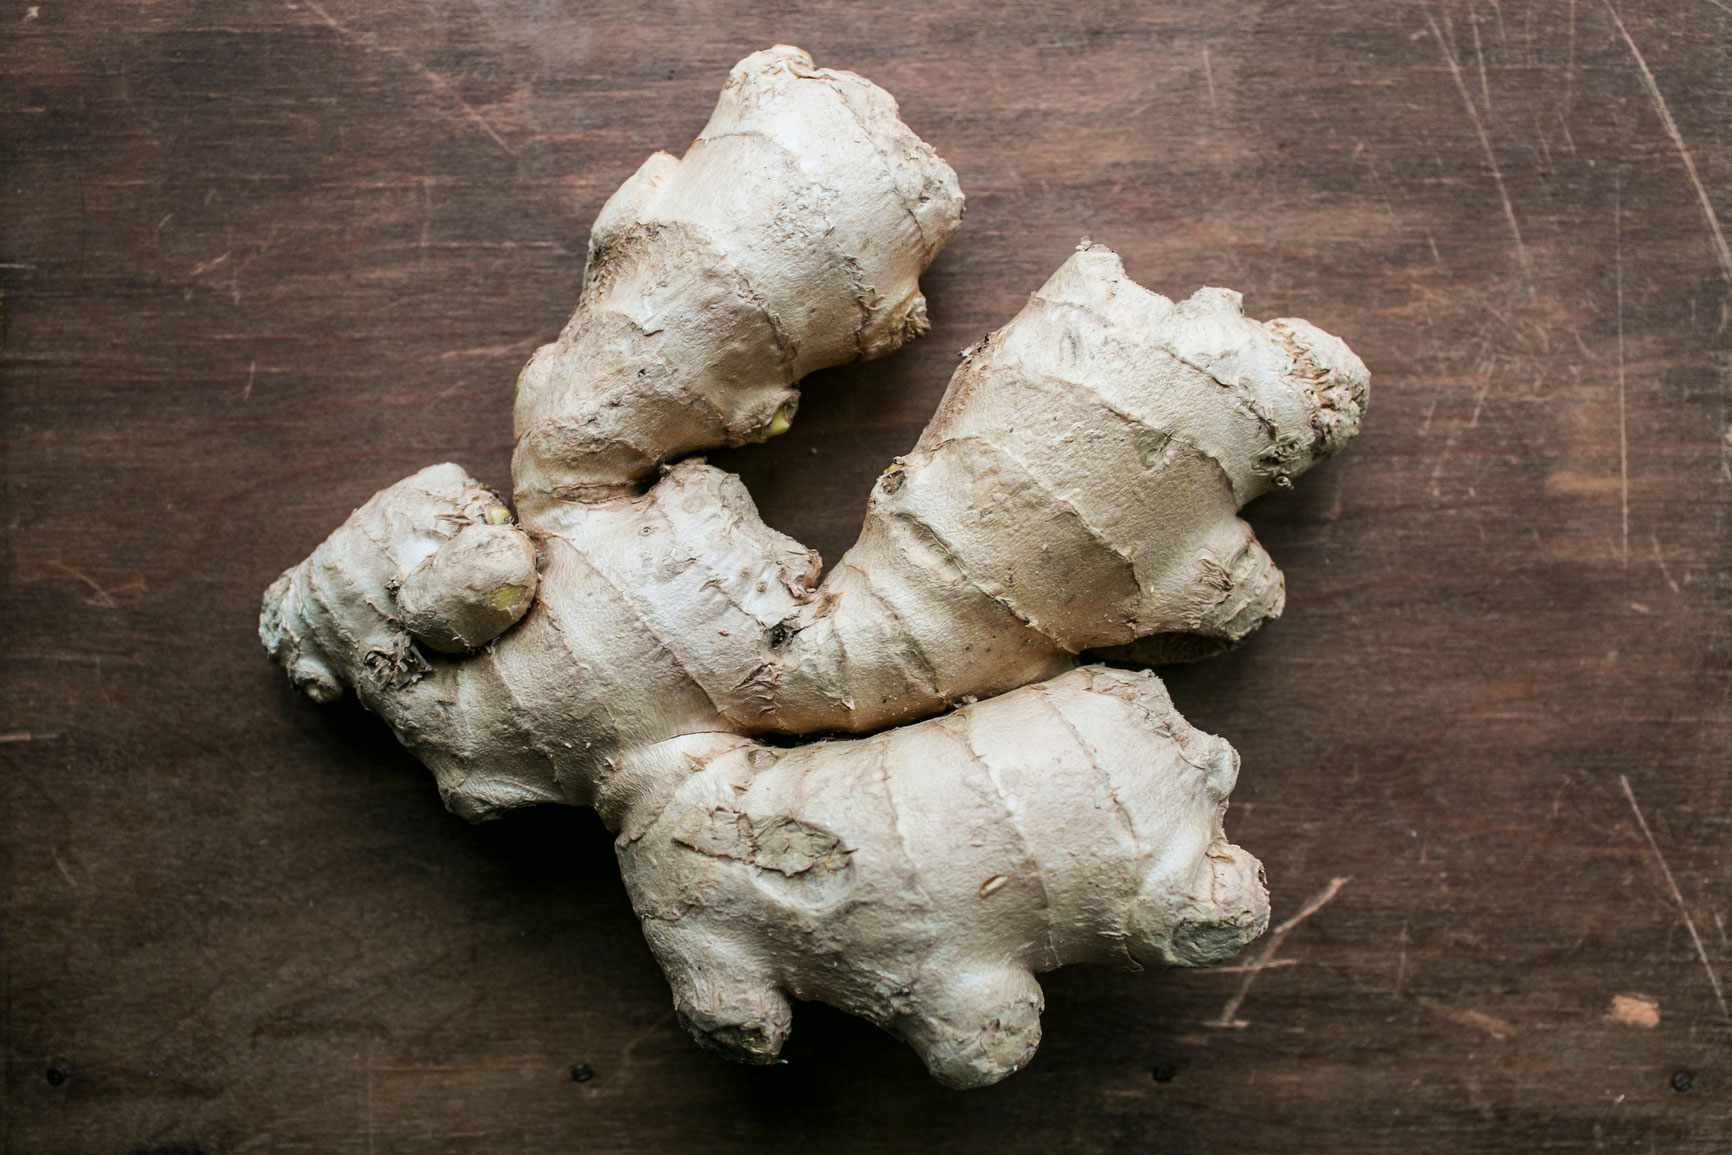 A large piece of ginger root